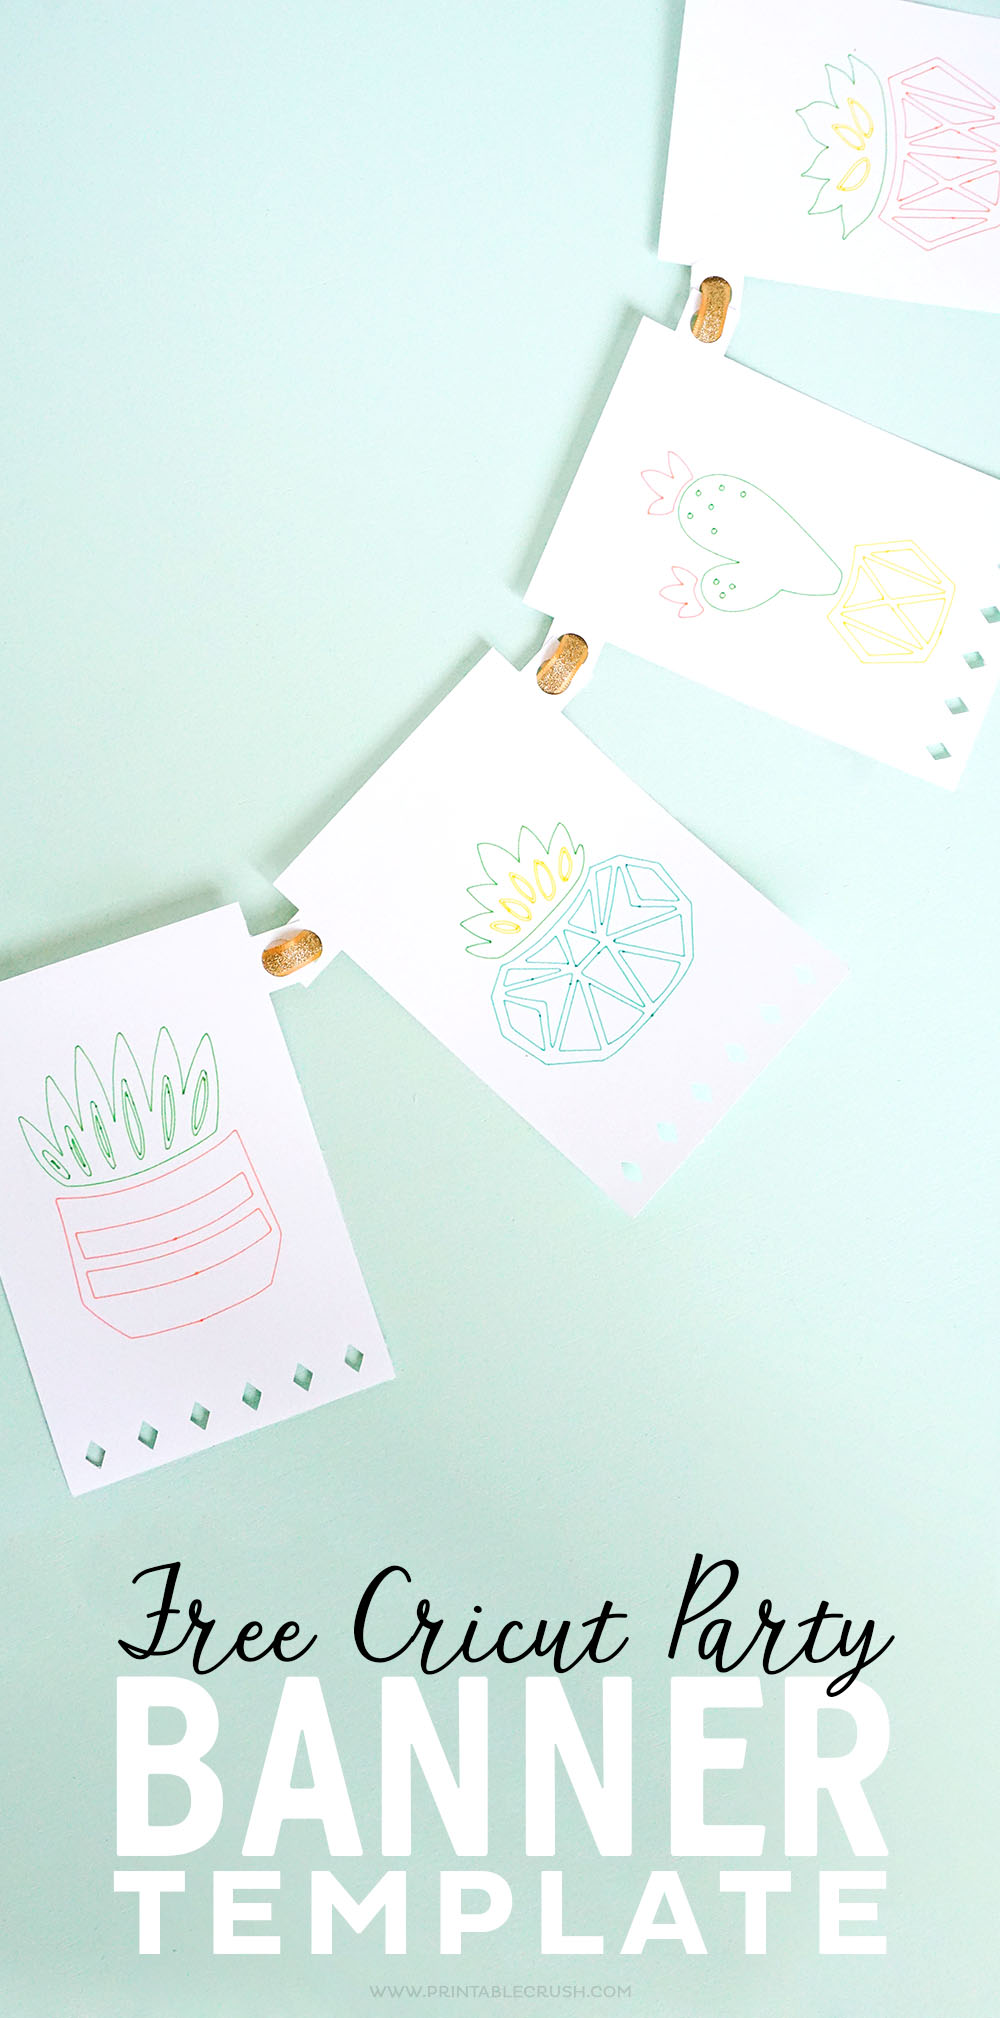 Free cricut party banner template printable crush make your own banner design with this free cricut party banner template maxwellsz